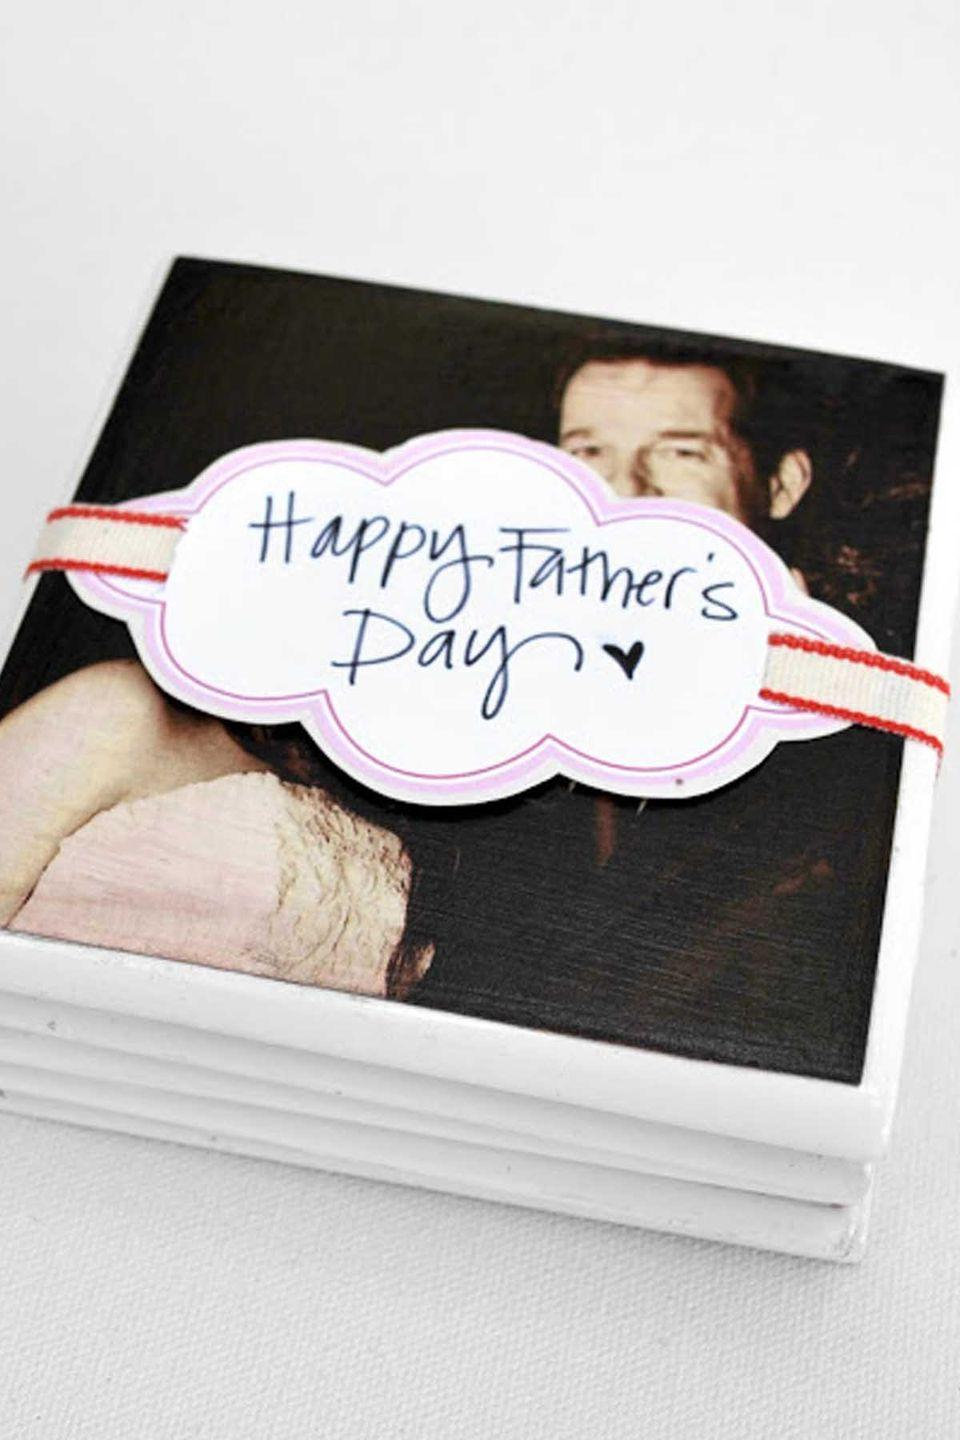 """<p>Give dad a way to cherish old memories forever with these easy-to-make coasters.</p><p><em><strong>Get the tutorial at </strong><a href=""""http://arrowandheart.blogspot.ro/2011/06/fathers-day-diy-coasters.html"""" rel=""""nofollow noopener"""" target=""""_blank"""" data-ylk=""""slk:Arrow and Heart"""" class=""""link rapid-noclick-resp""""><strong>Arrow and Heart</strong></a><strong>. </strong></em></p>"""